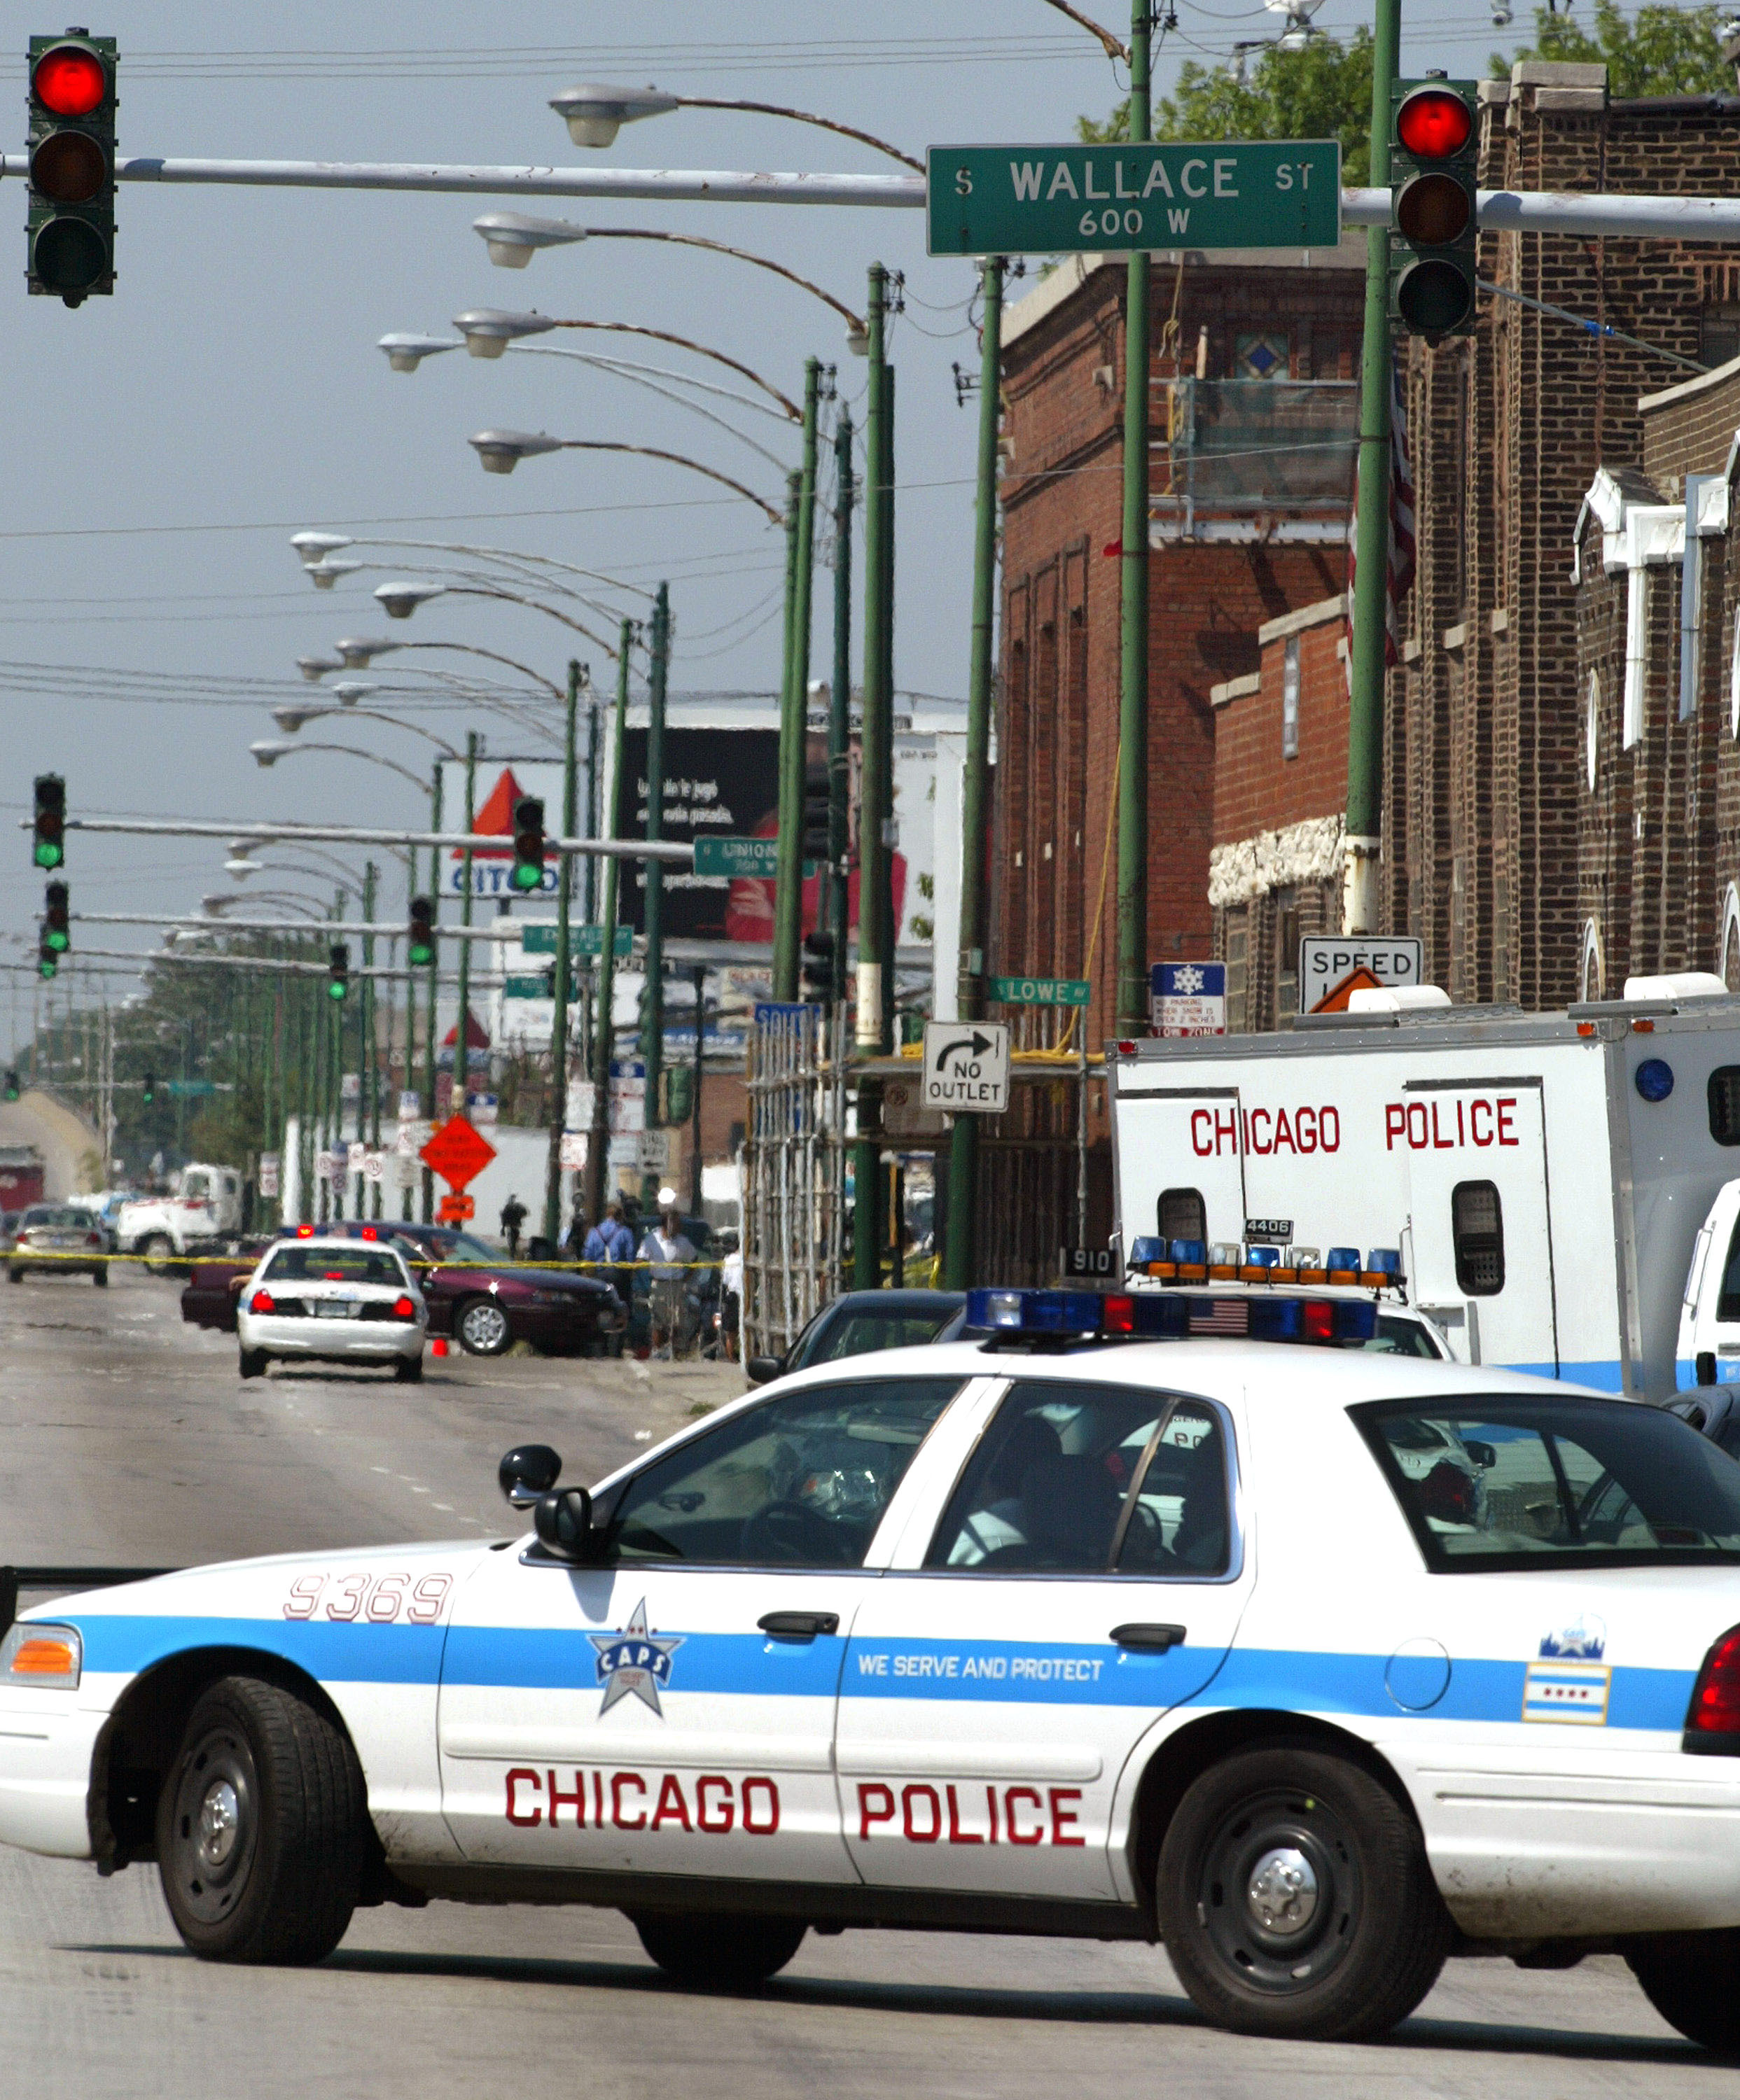 More mental illness training for Chicago police